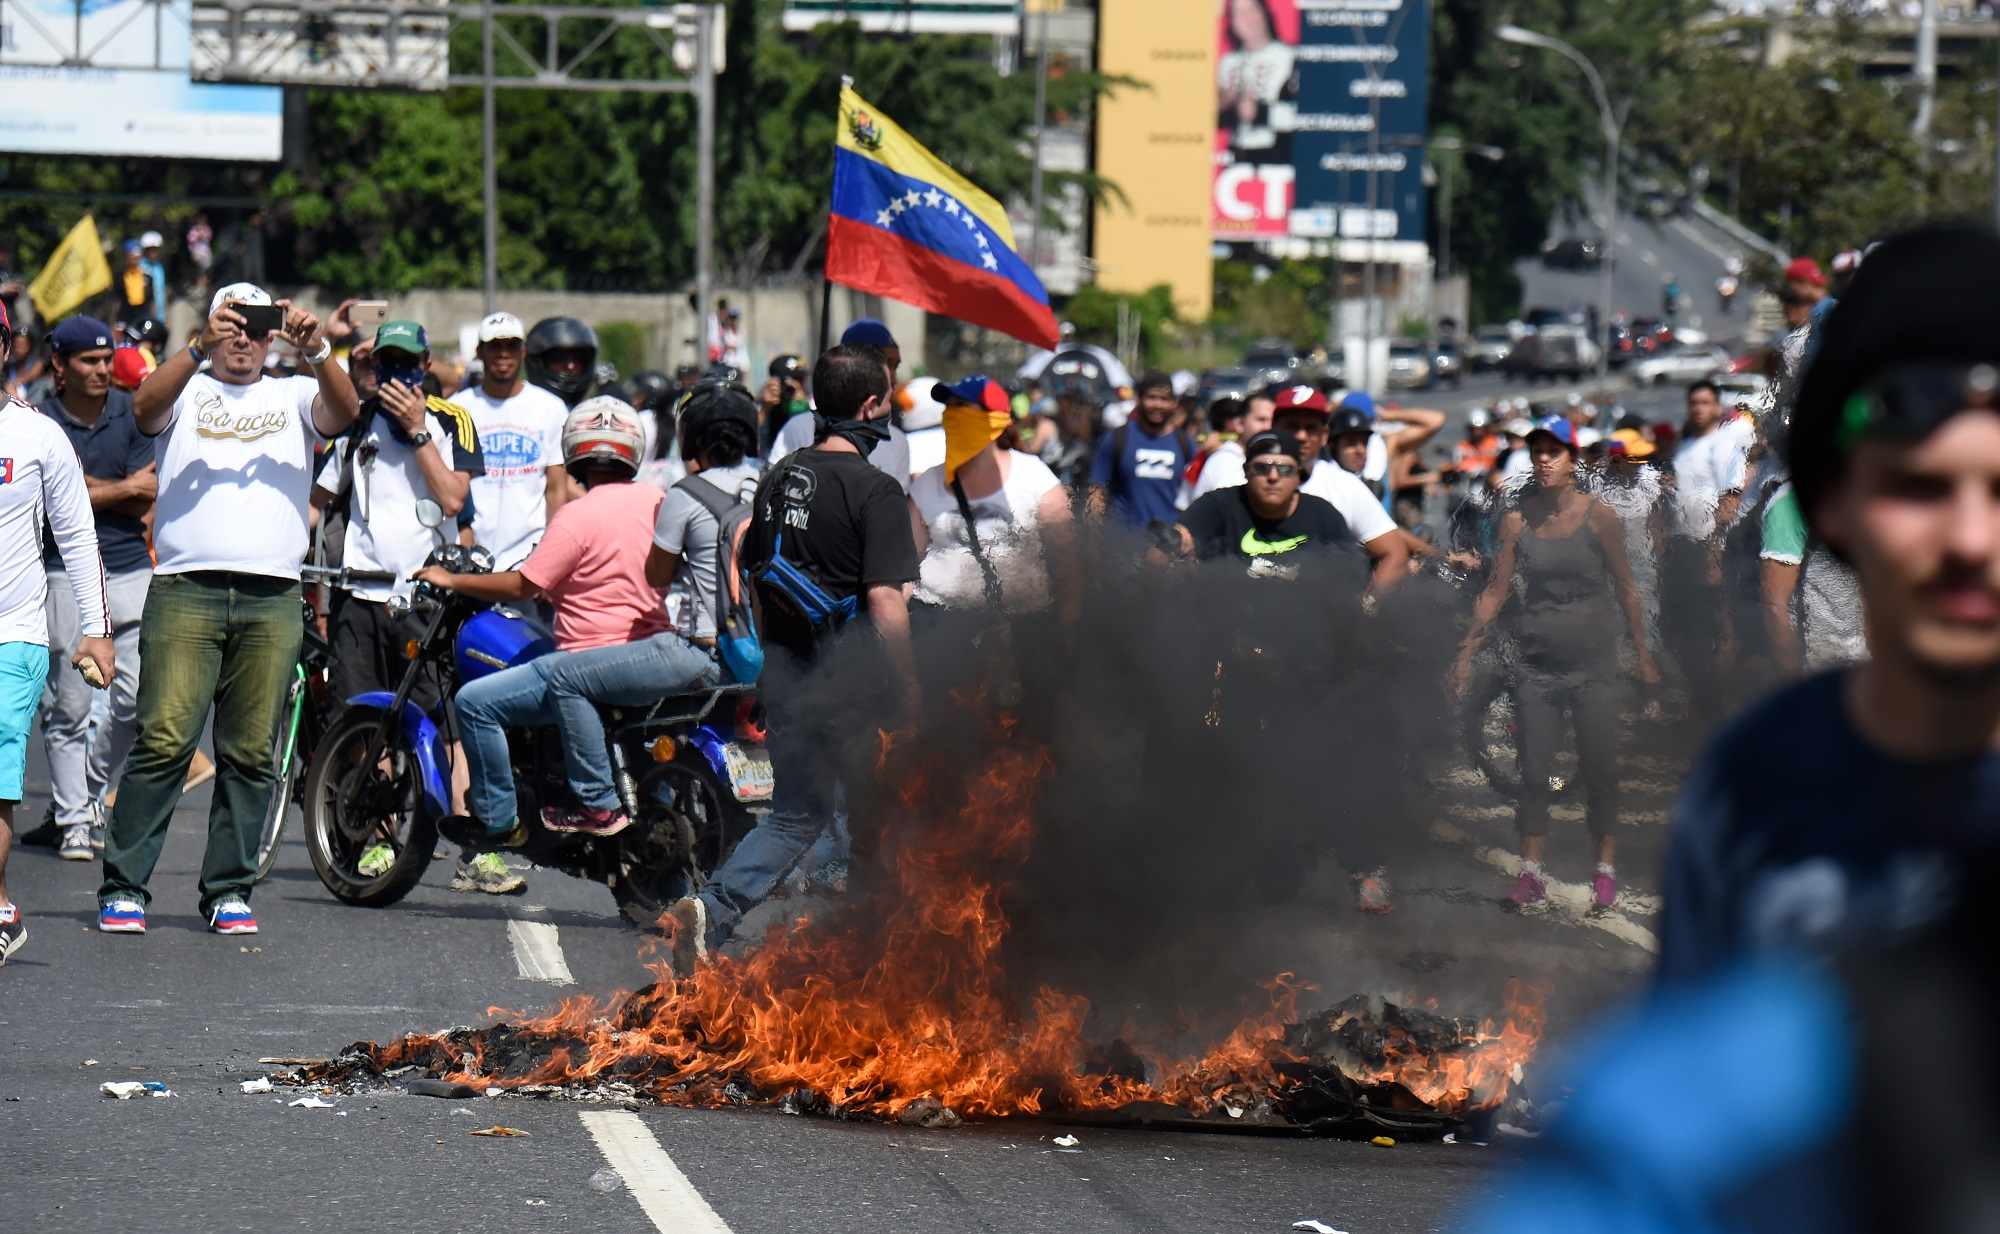 Riot police and opposition activists clash during a march in Caracas, on September 1, 2016. Venezuela's opposition and government head into a crucial test of strength Thursday with massive marches for and against a referendum to recall President Nicolas Maduro that have raised fears of a violent confrontation. / AFP PHOTO / JUAN BARRETO